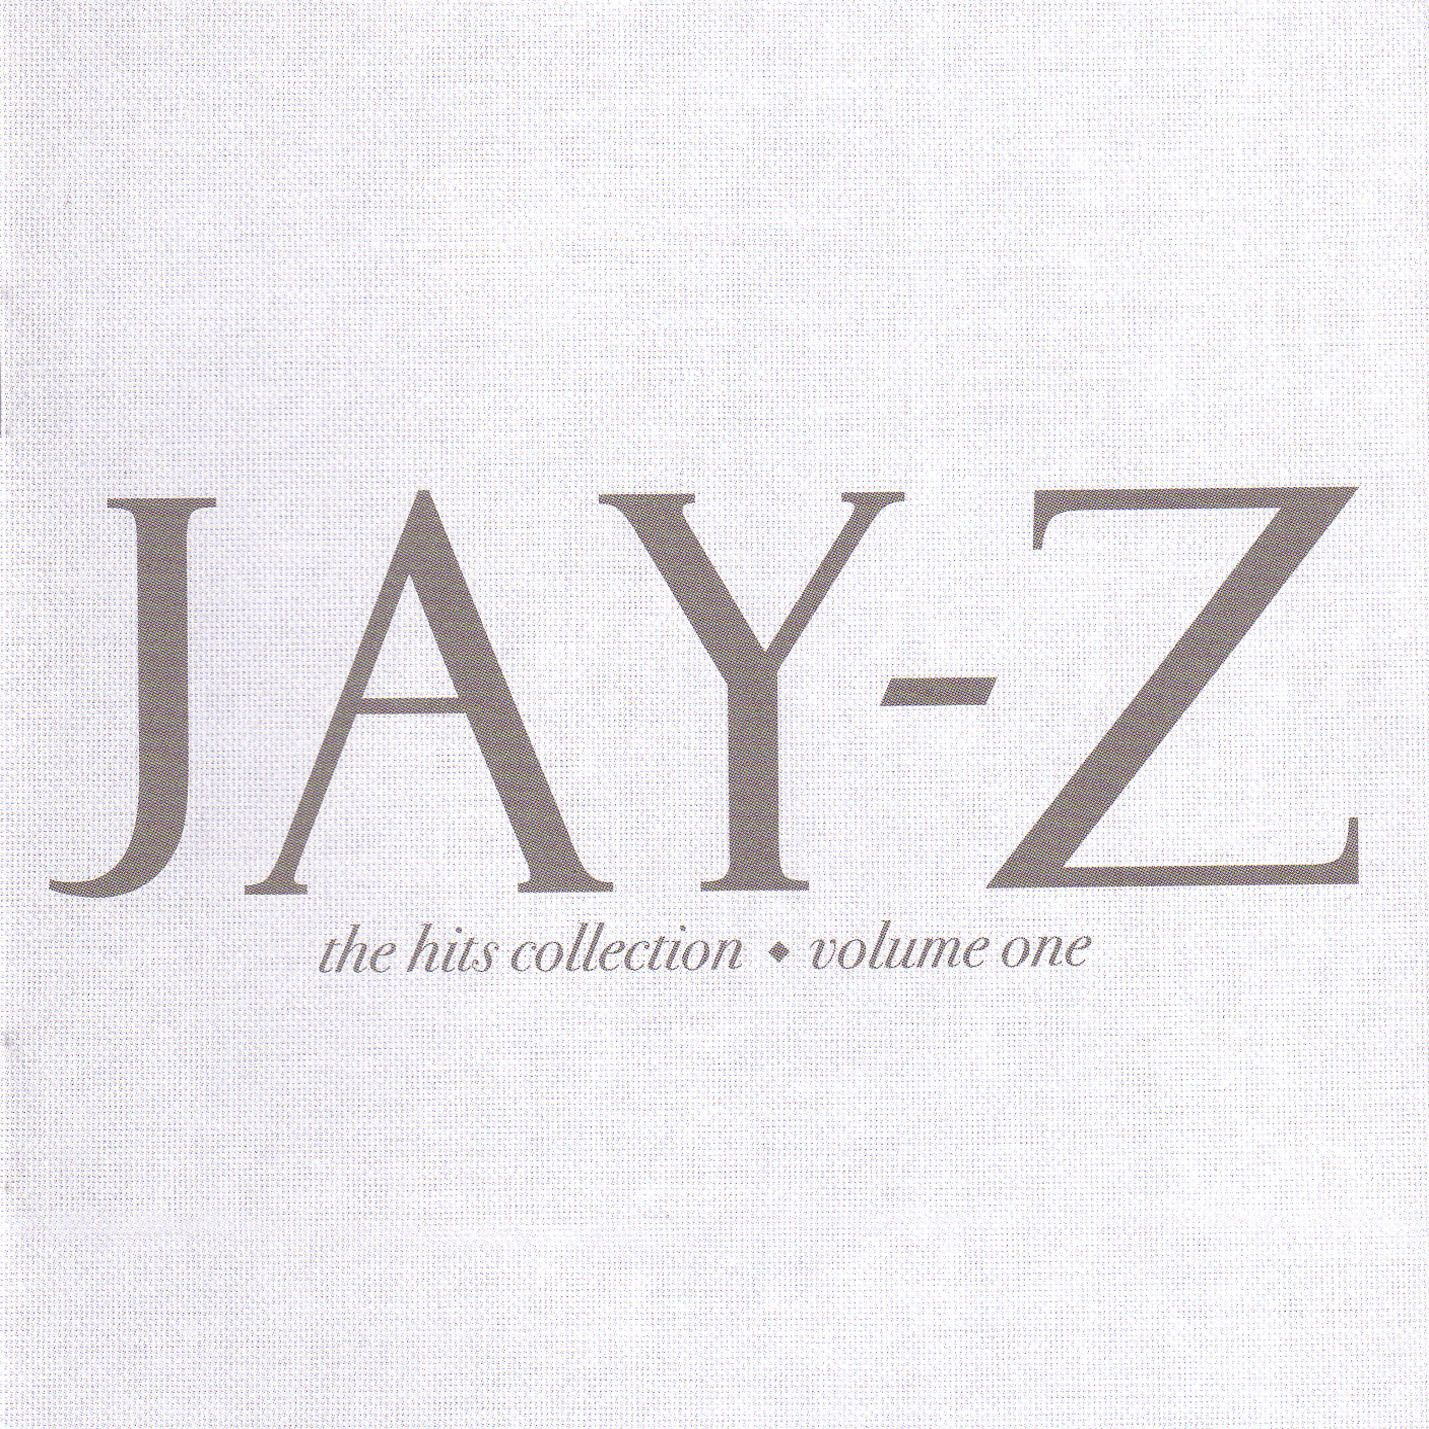 Jay-Z - The Hits Collection Volume 1 album cover